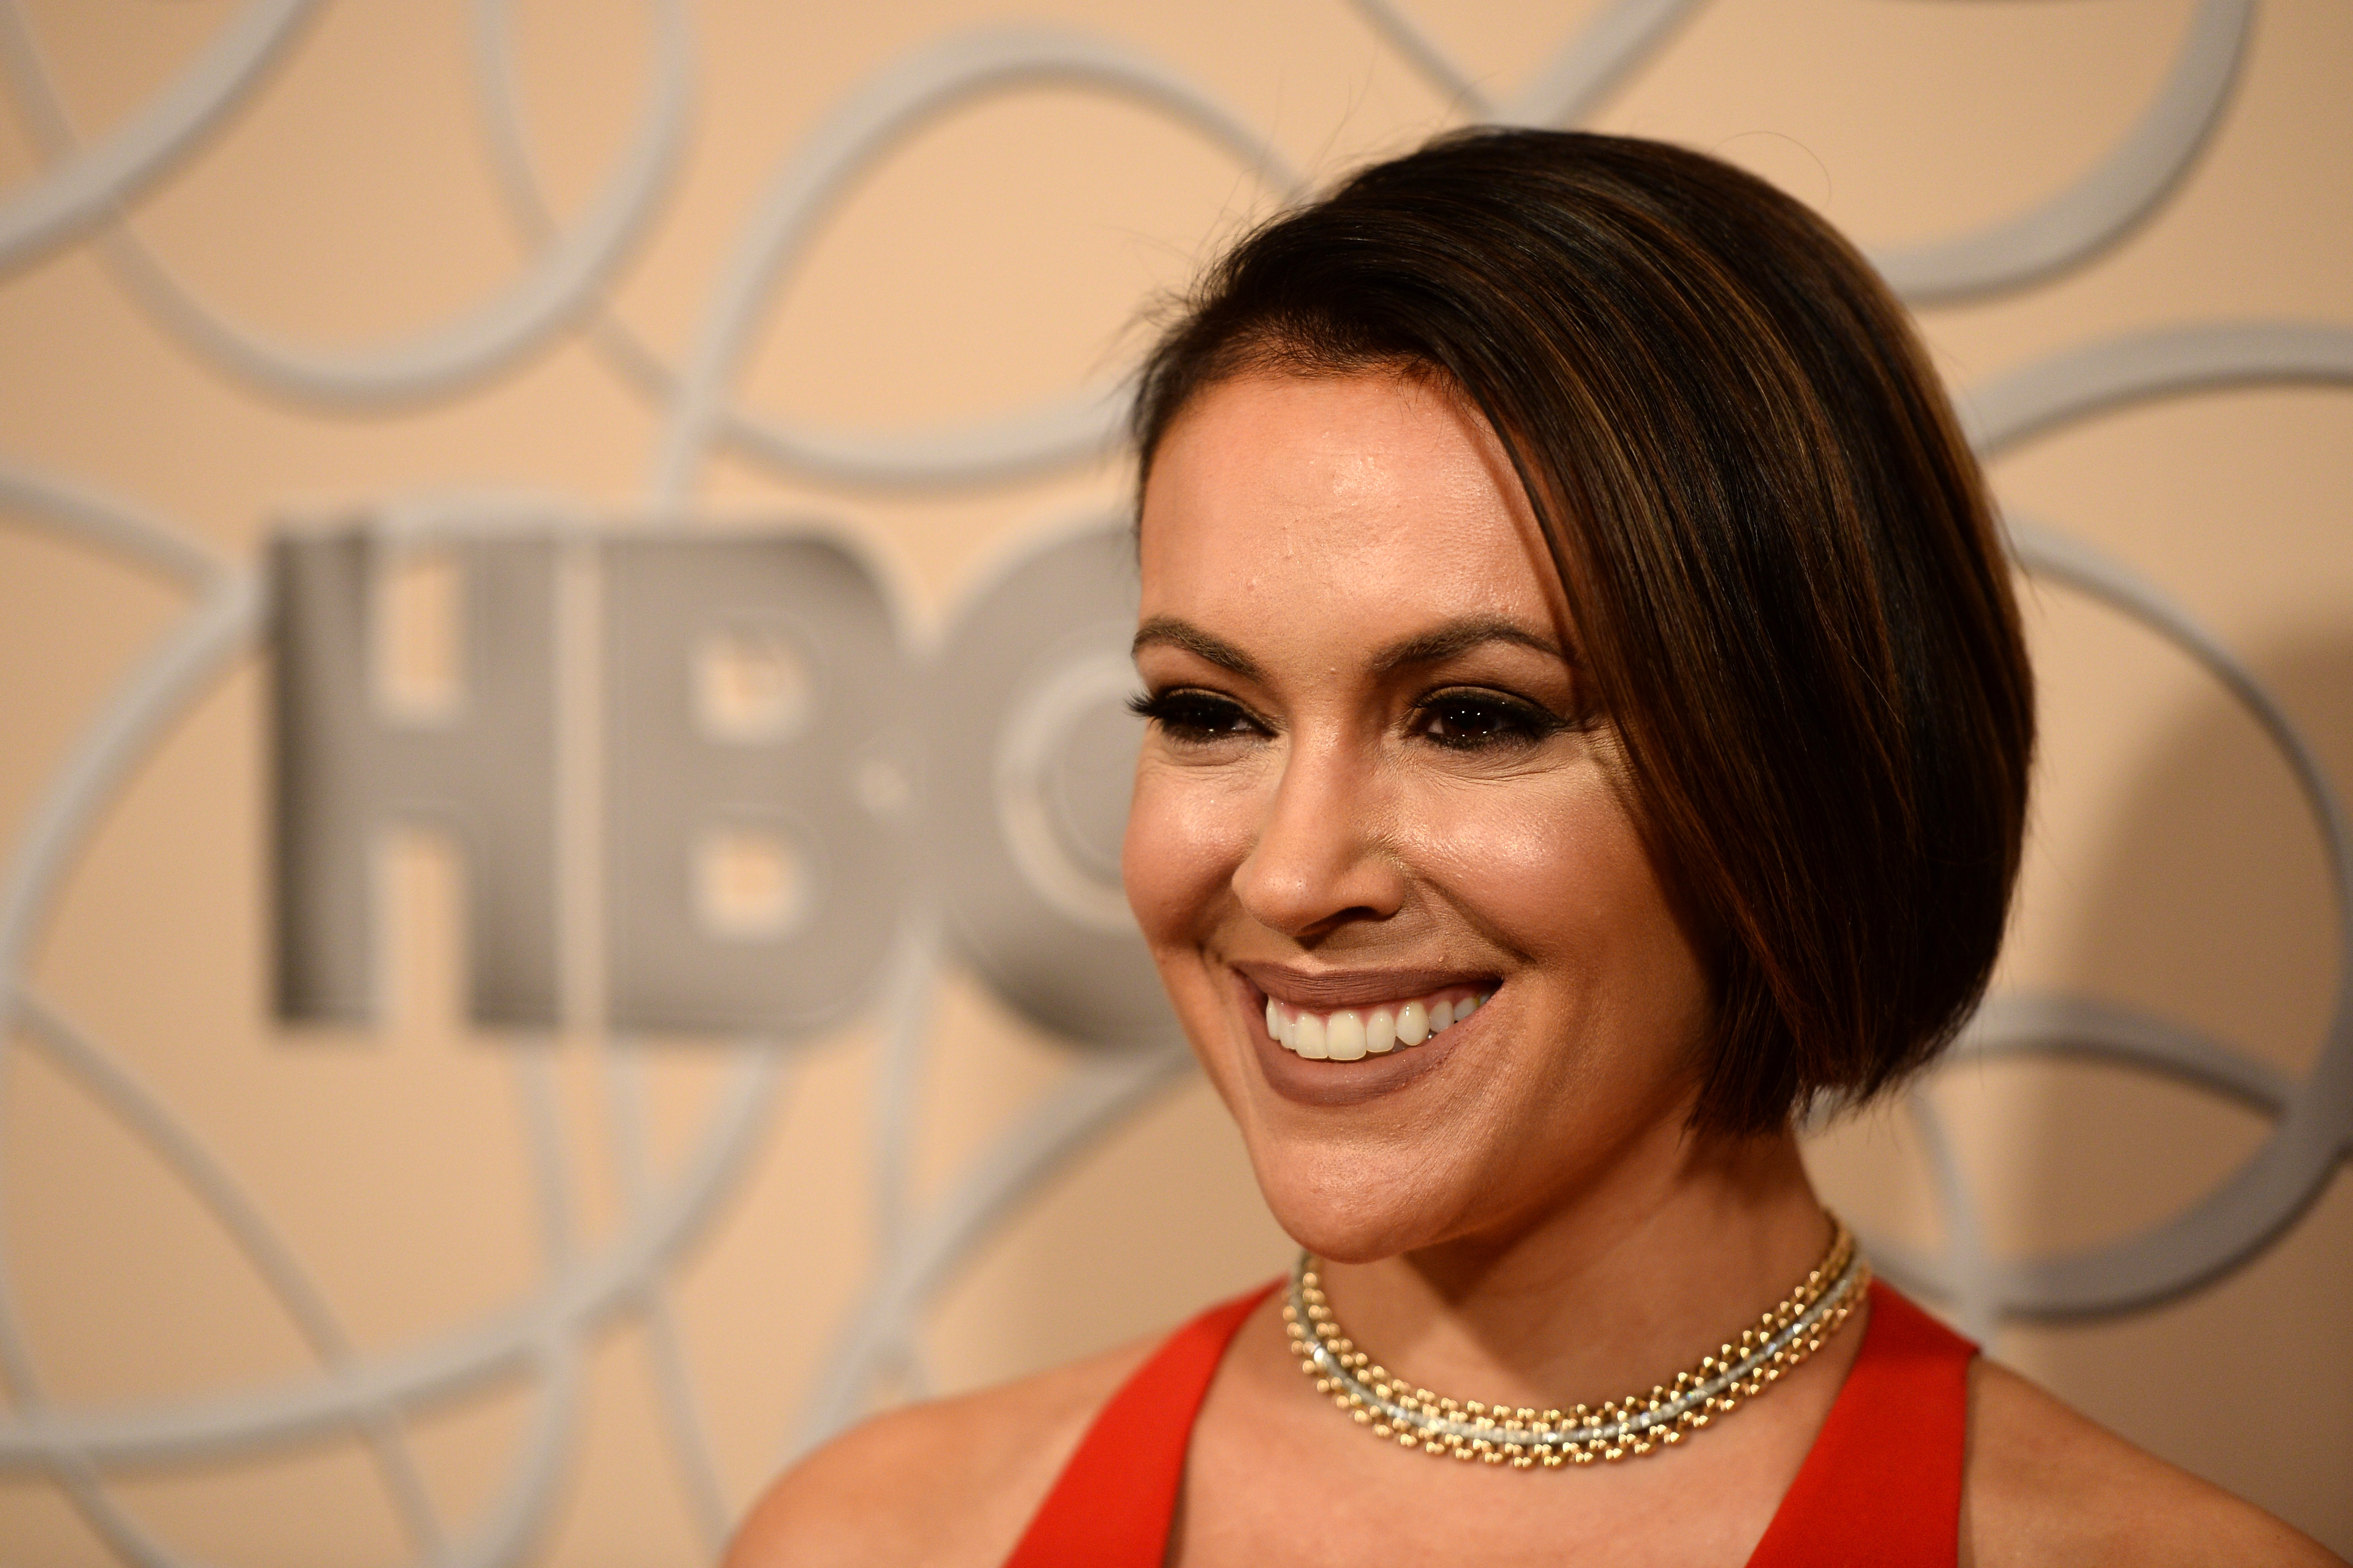 Actress Alyssa Milano arrives at HBO's Official Golden Globe Awards After Party at Circa 55 Restaurant on Jan. 8, 2017 in Los Angeles, California.